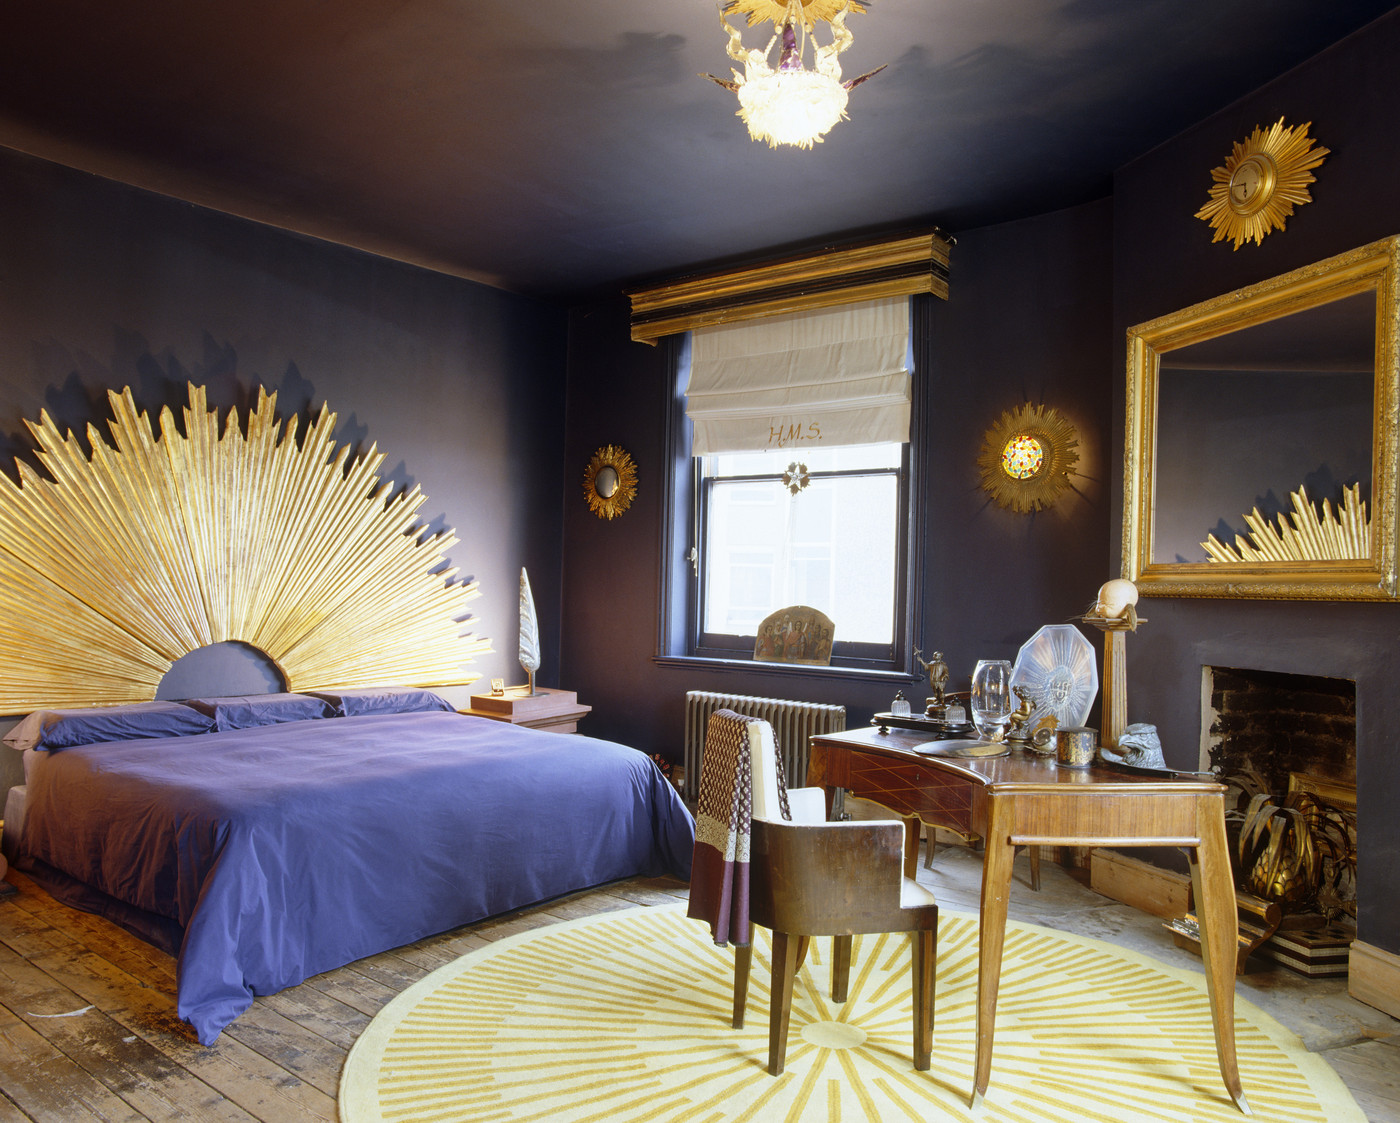 Lap of luxury channel mardi gras with these festive Purple and gold bedrooms